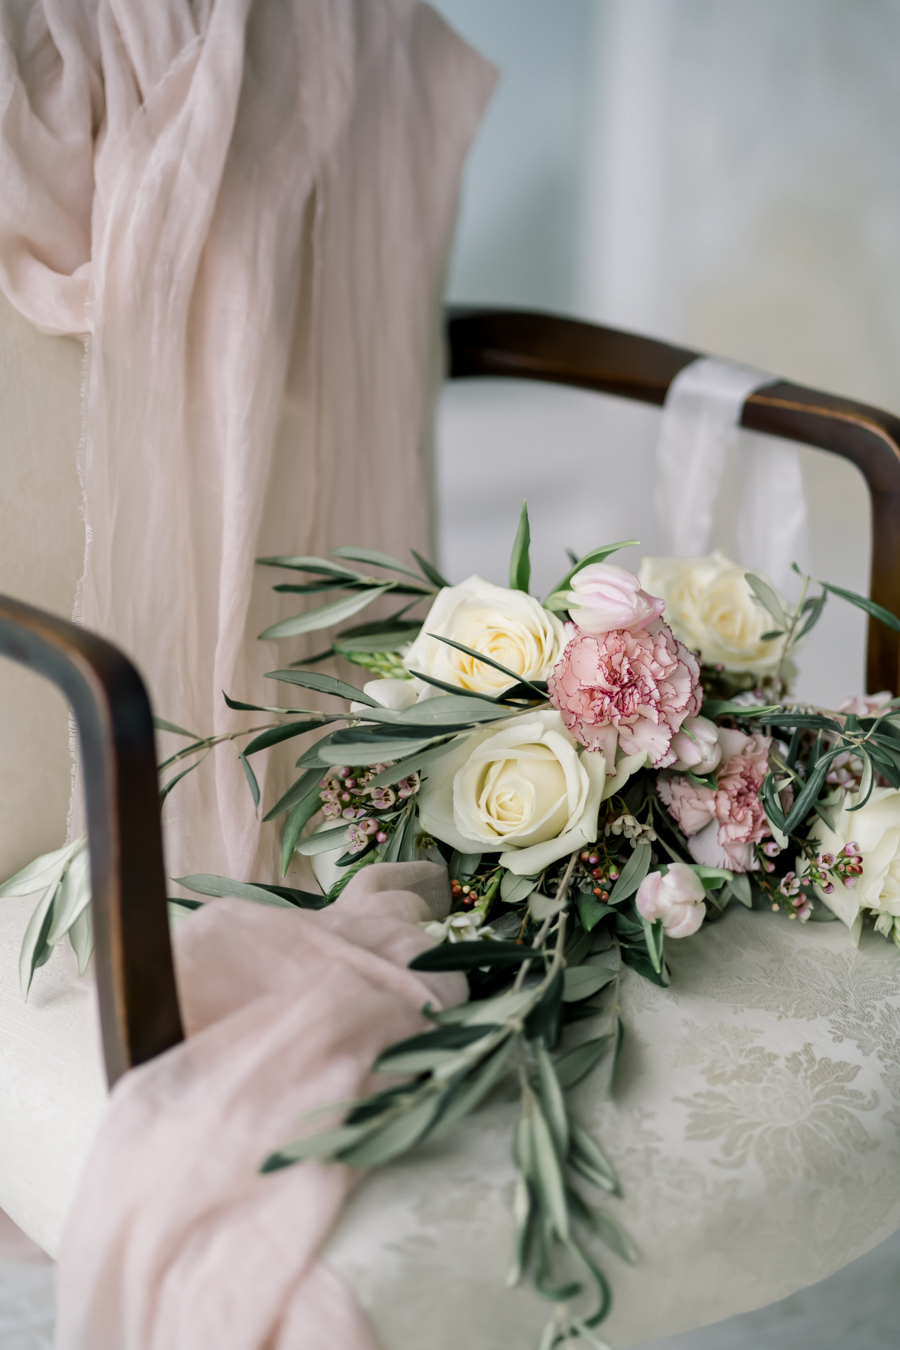 Spring blossom wedding style inspiration and ideas with Chloe Ely Photography at Barton Court (30)